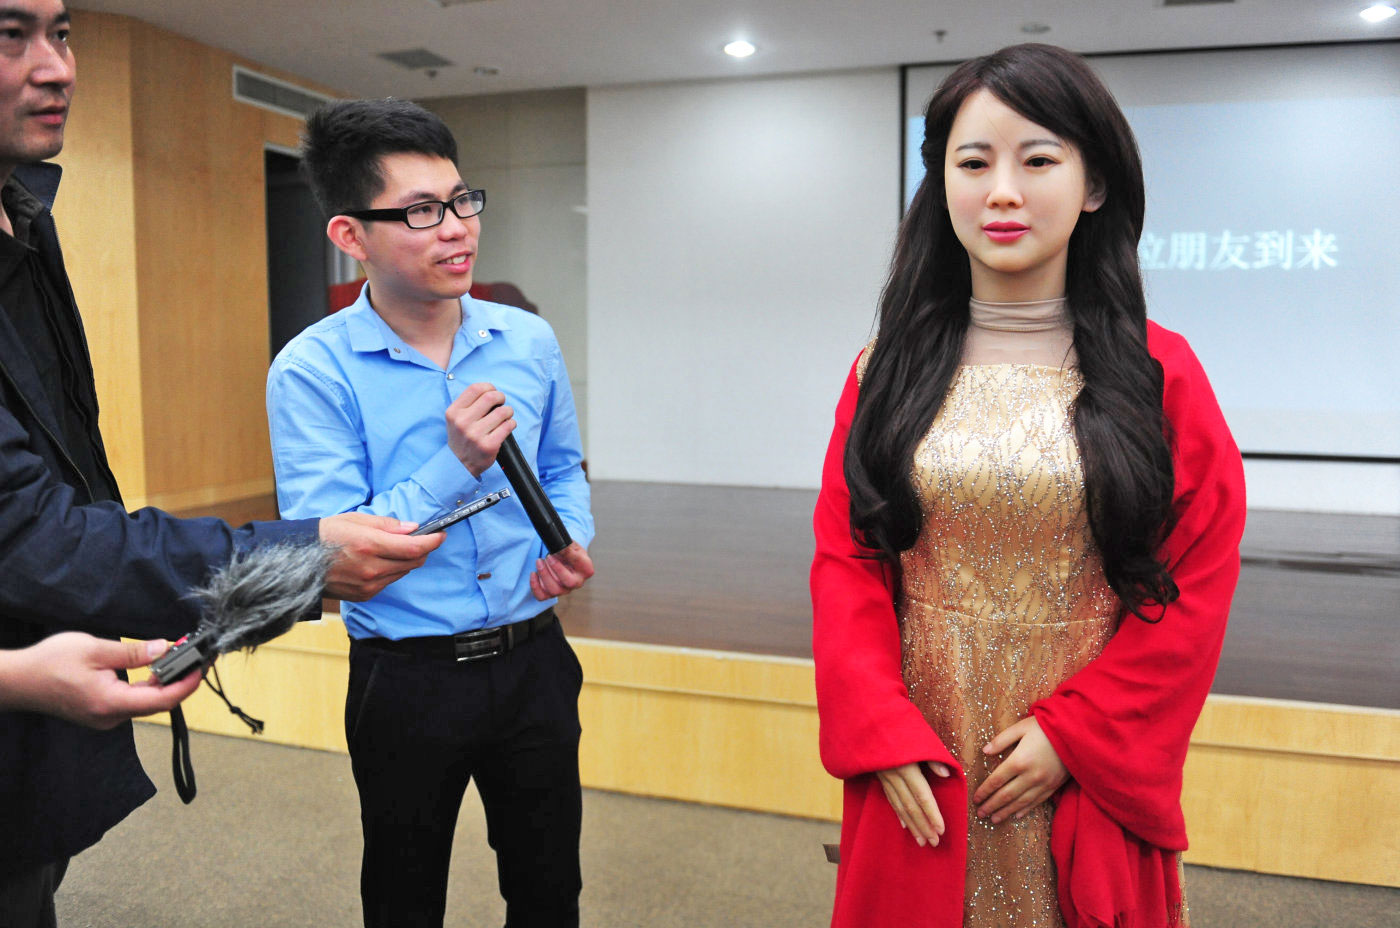 chinas realistic robot jia jia can chat with real humans